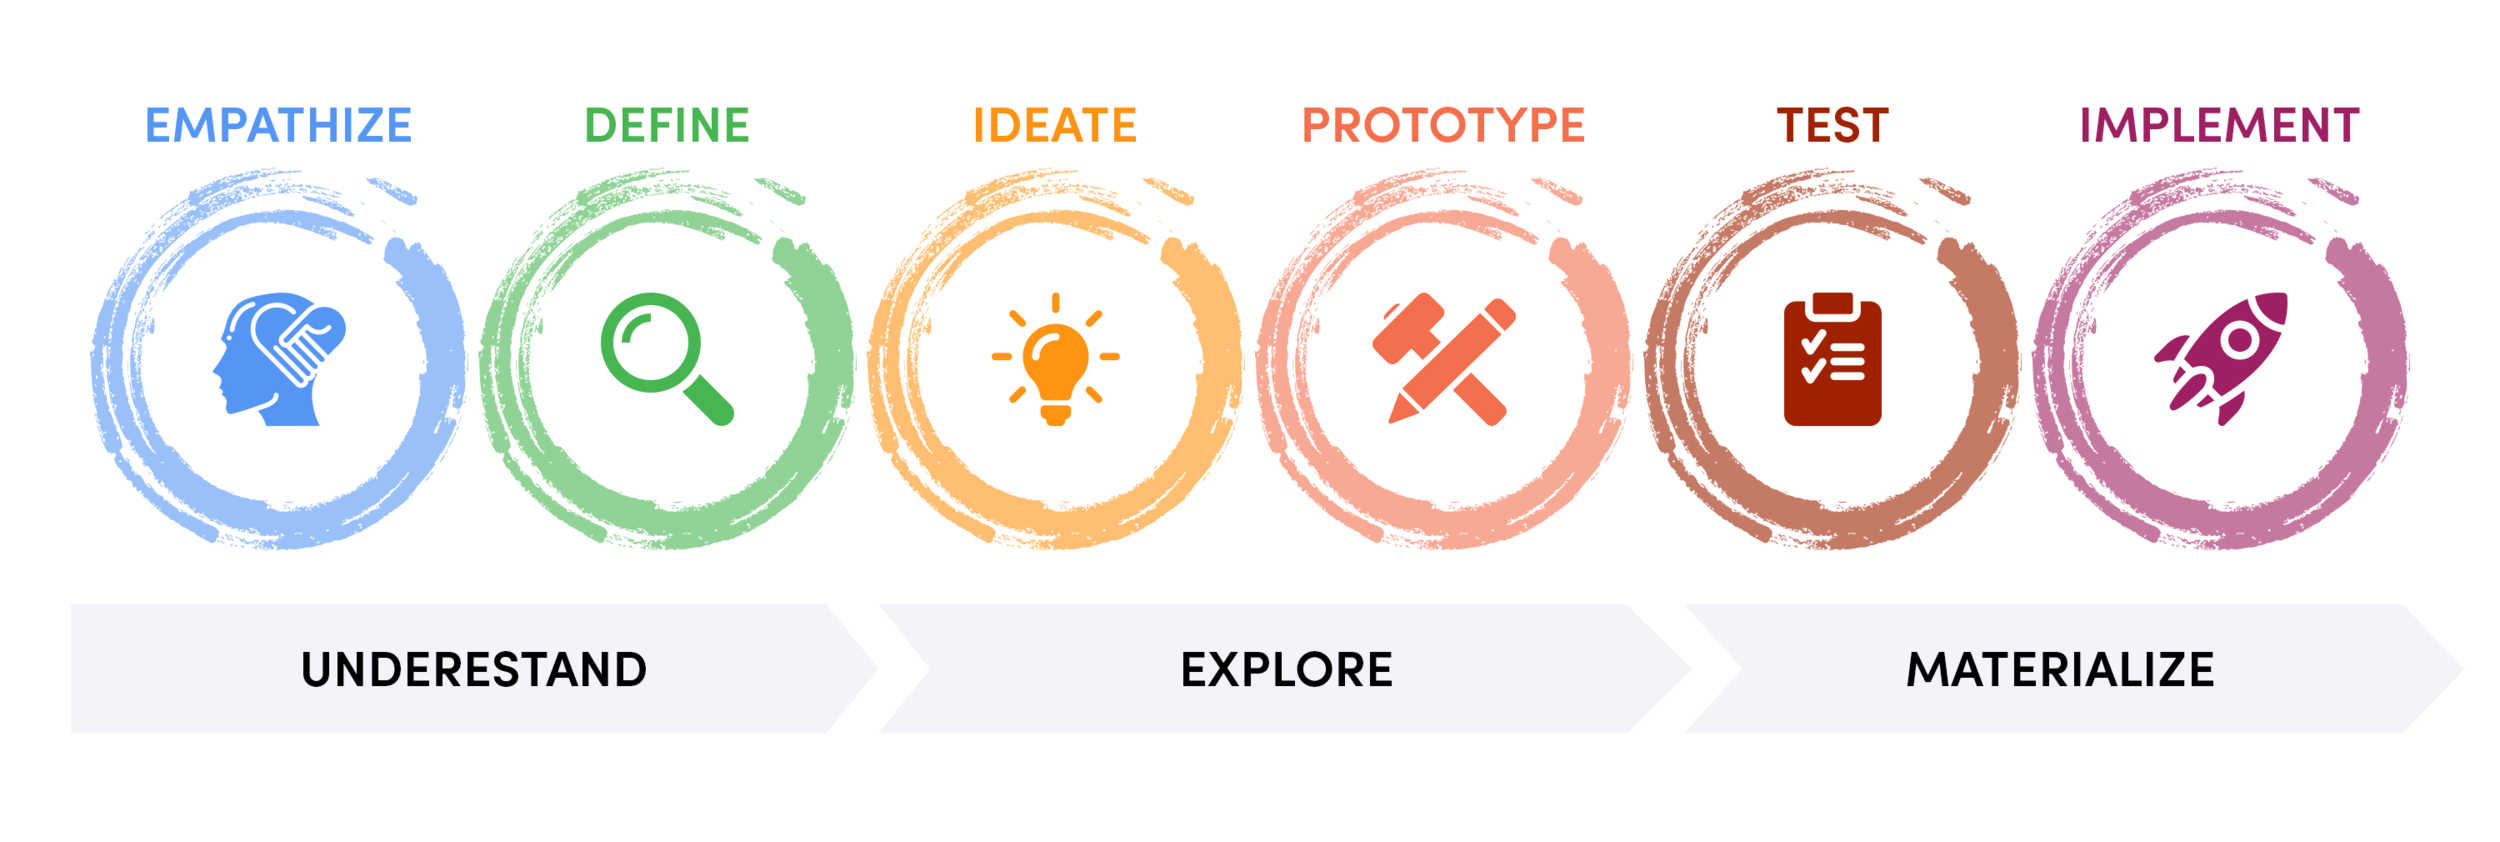 The design thinking process according to the    Stanford d. School   .